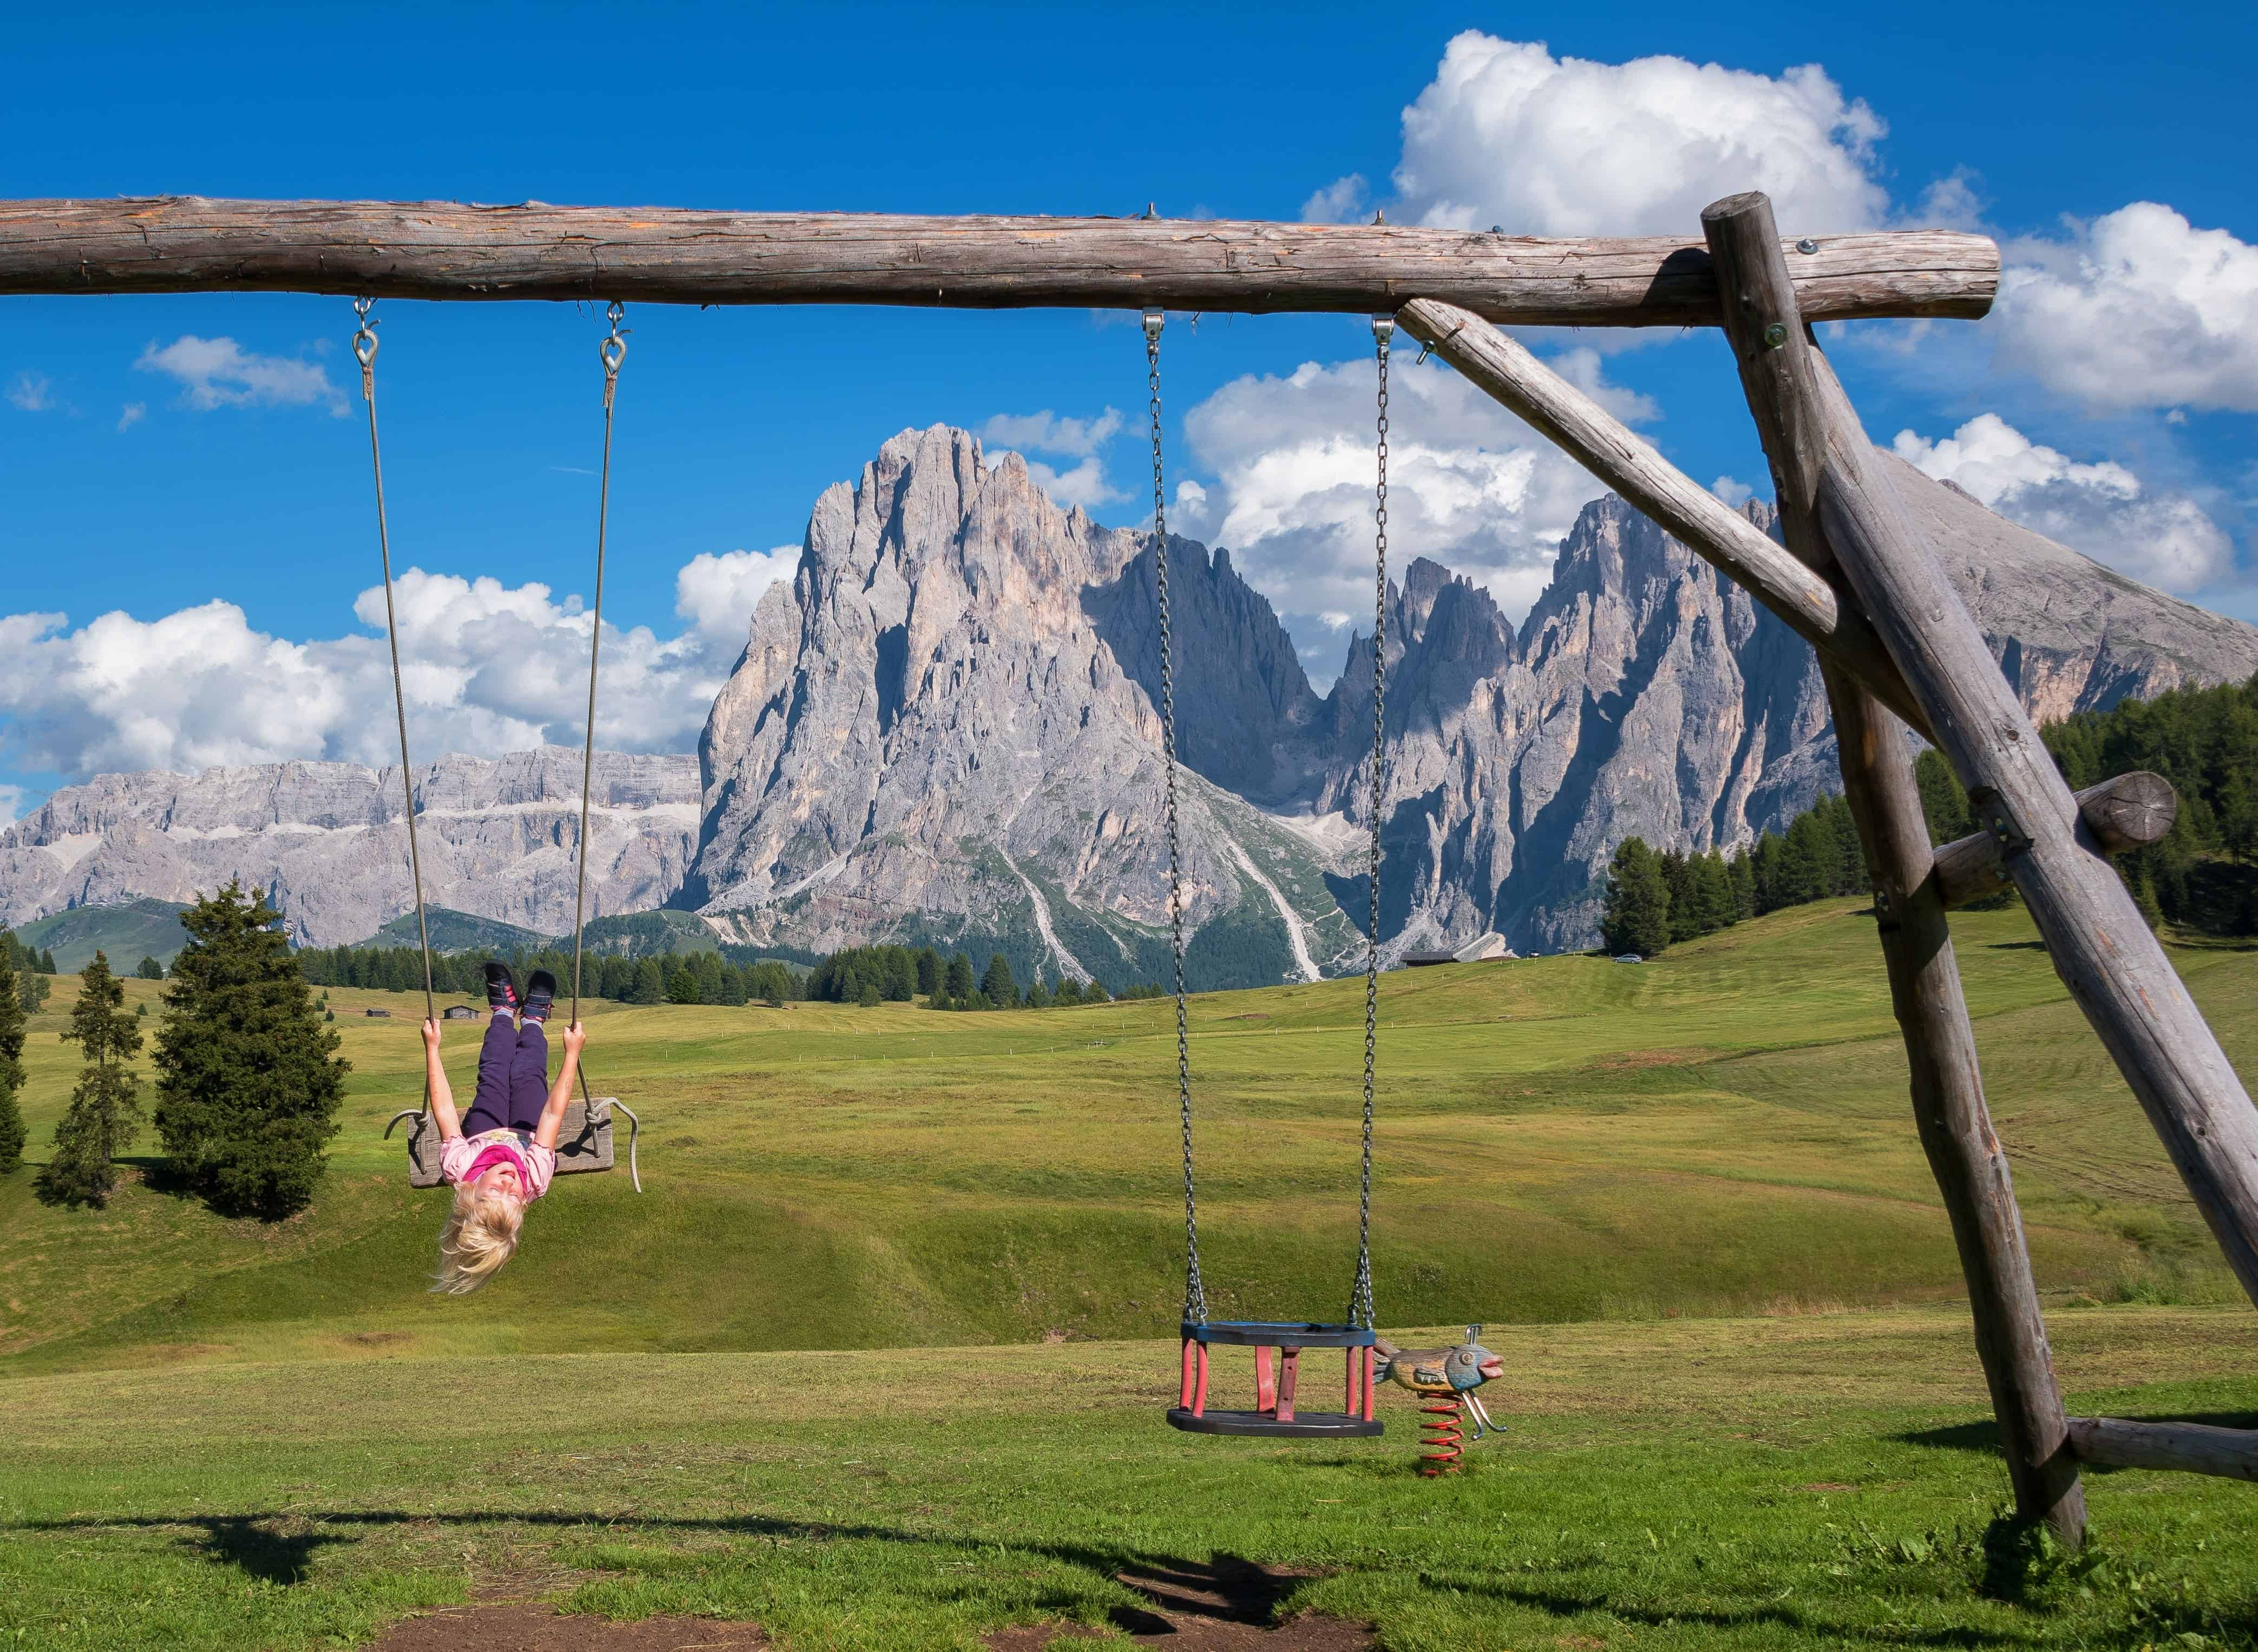 child swinging on a swings in the mountains